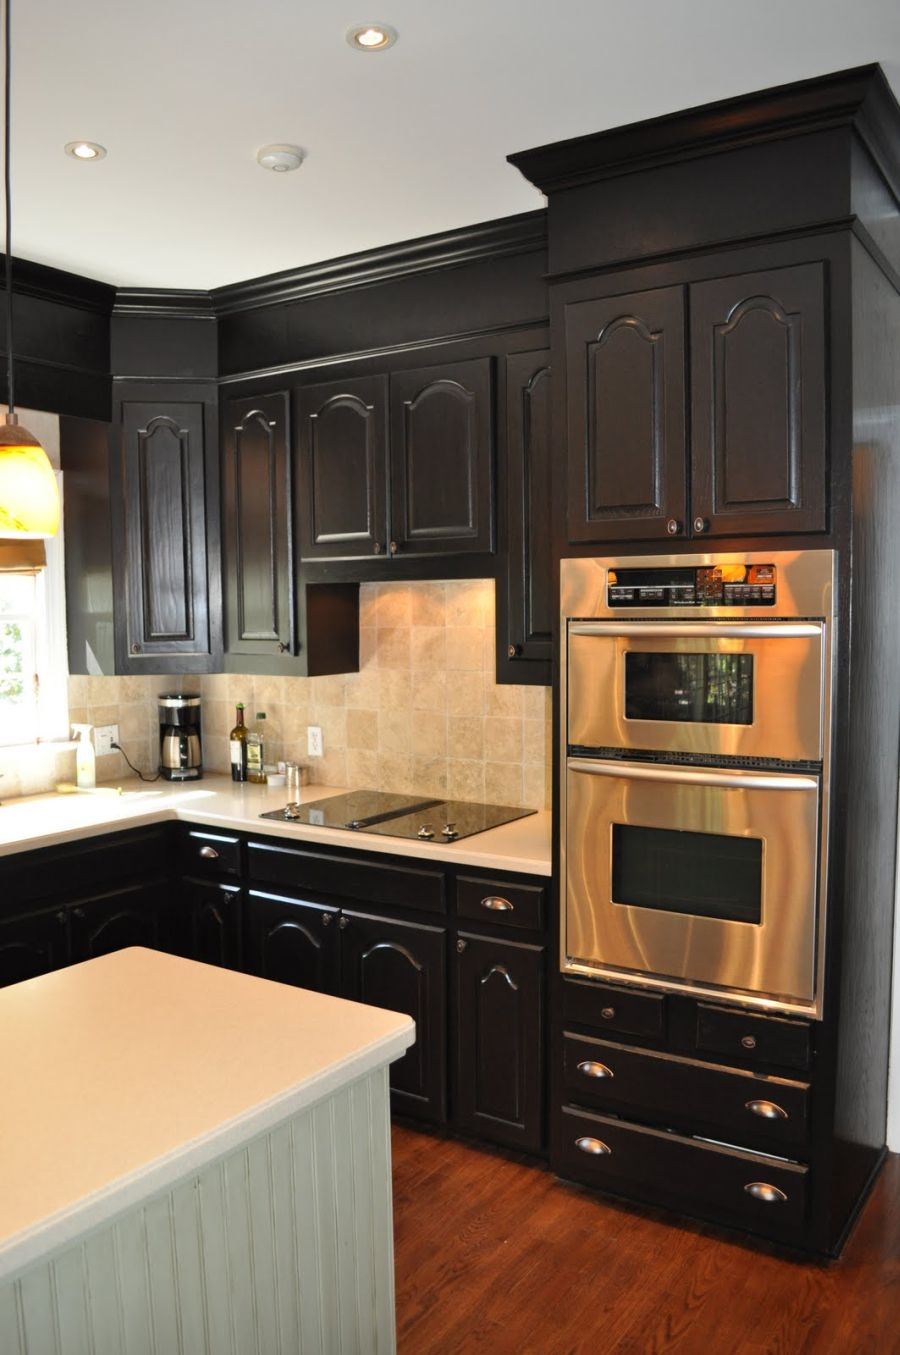 Black Cabinets with Soffits  One Color Fits Most Kitchen